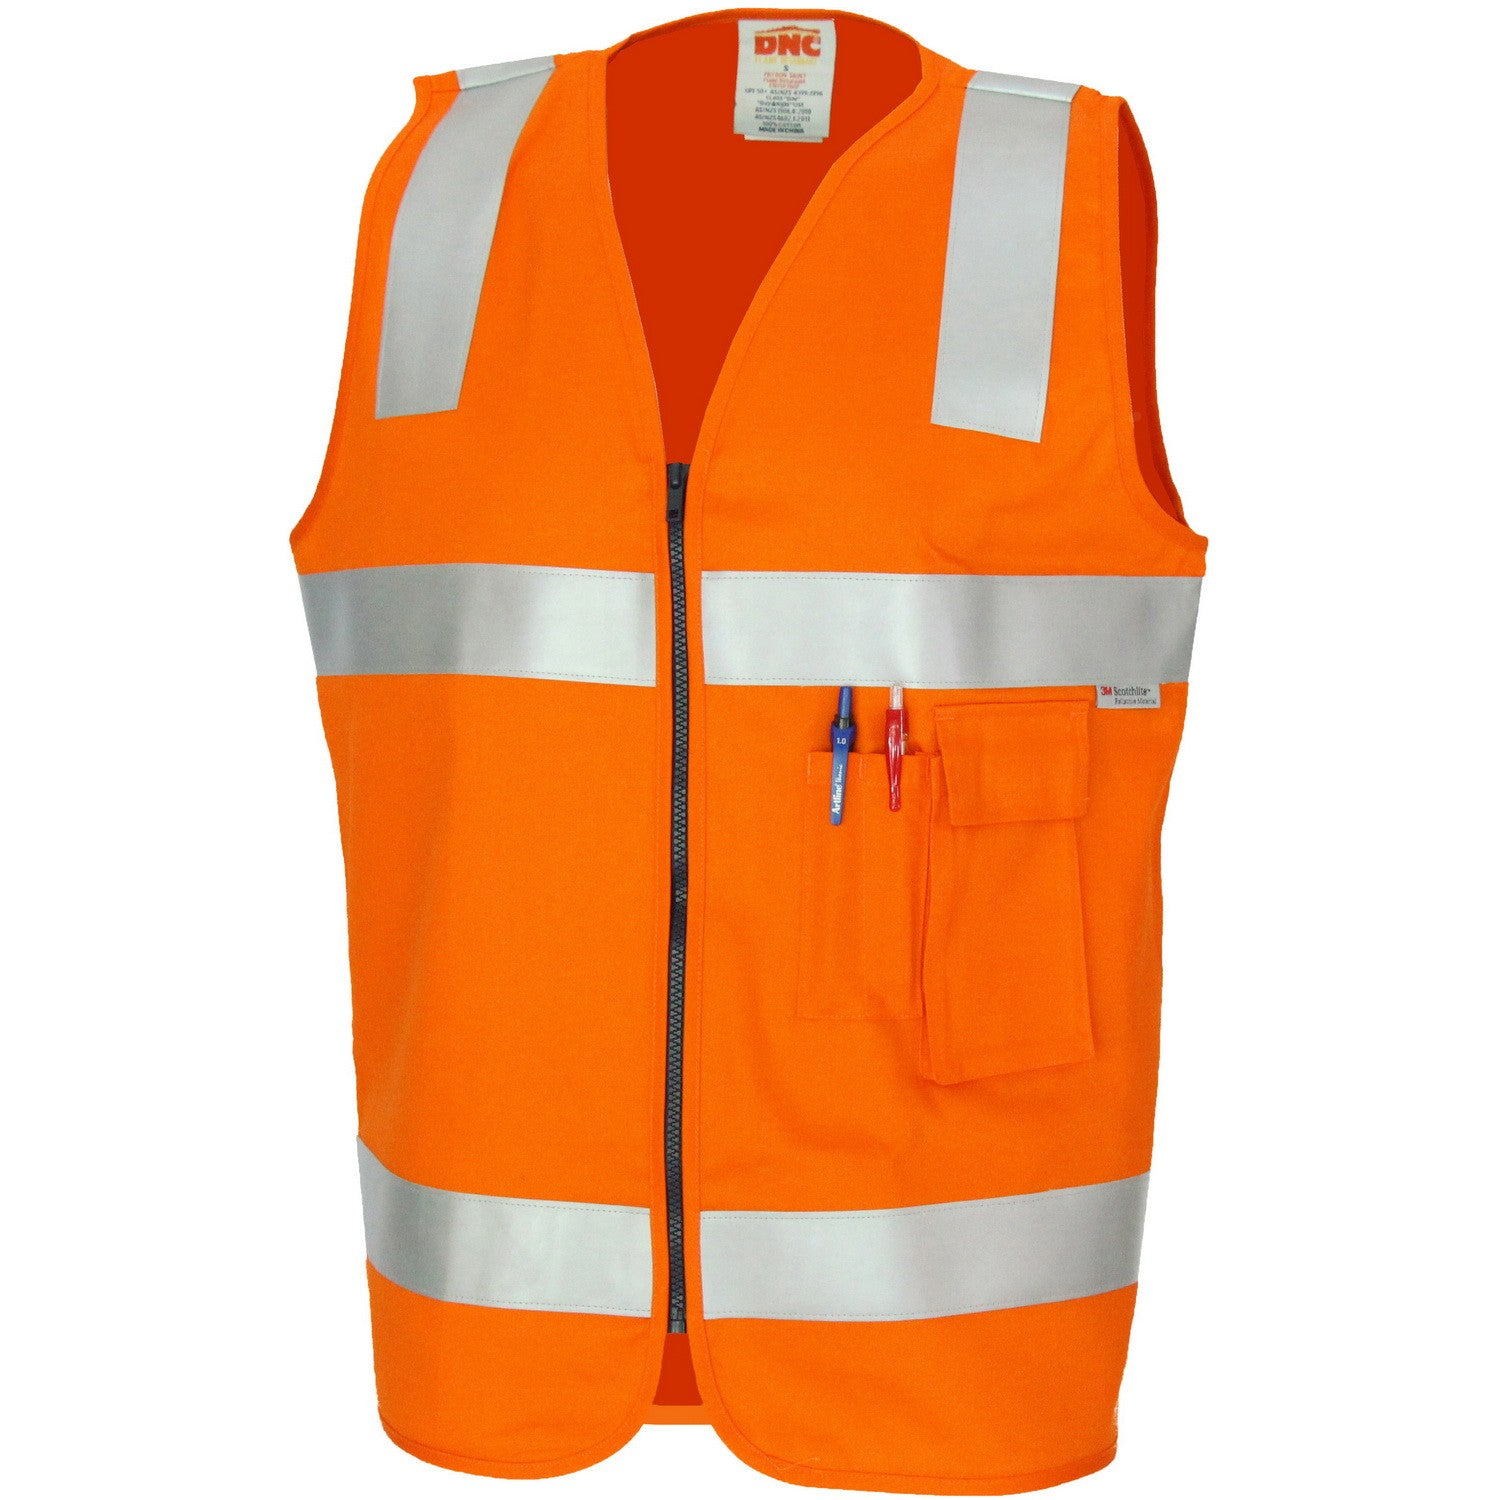 Orange Work Reflective Jacket Safety Mesh Vest With 3m Tape Fancy Colours Safety Clothing Workplace Safety Supplies